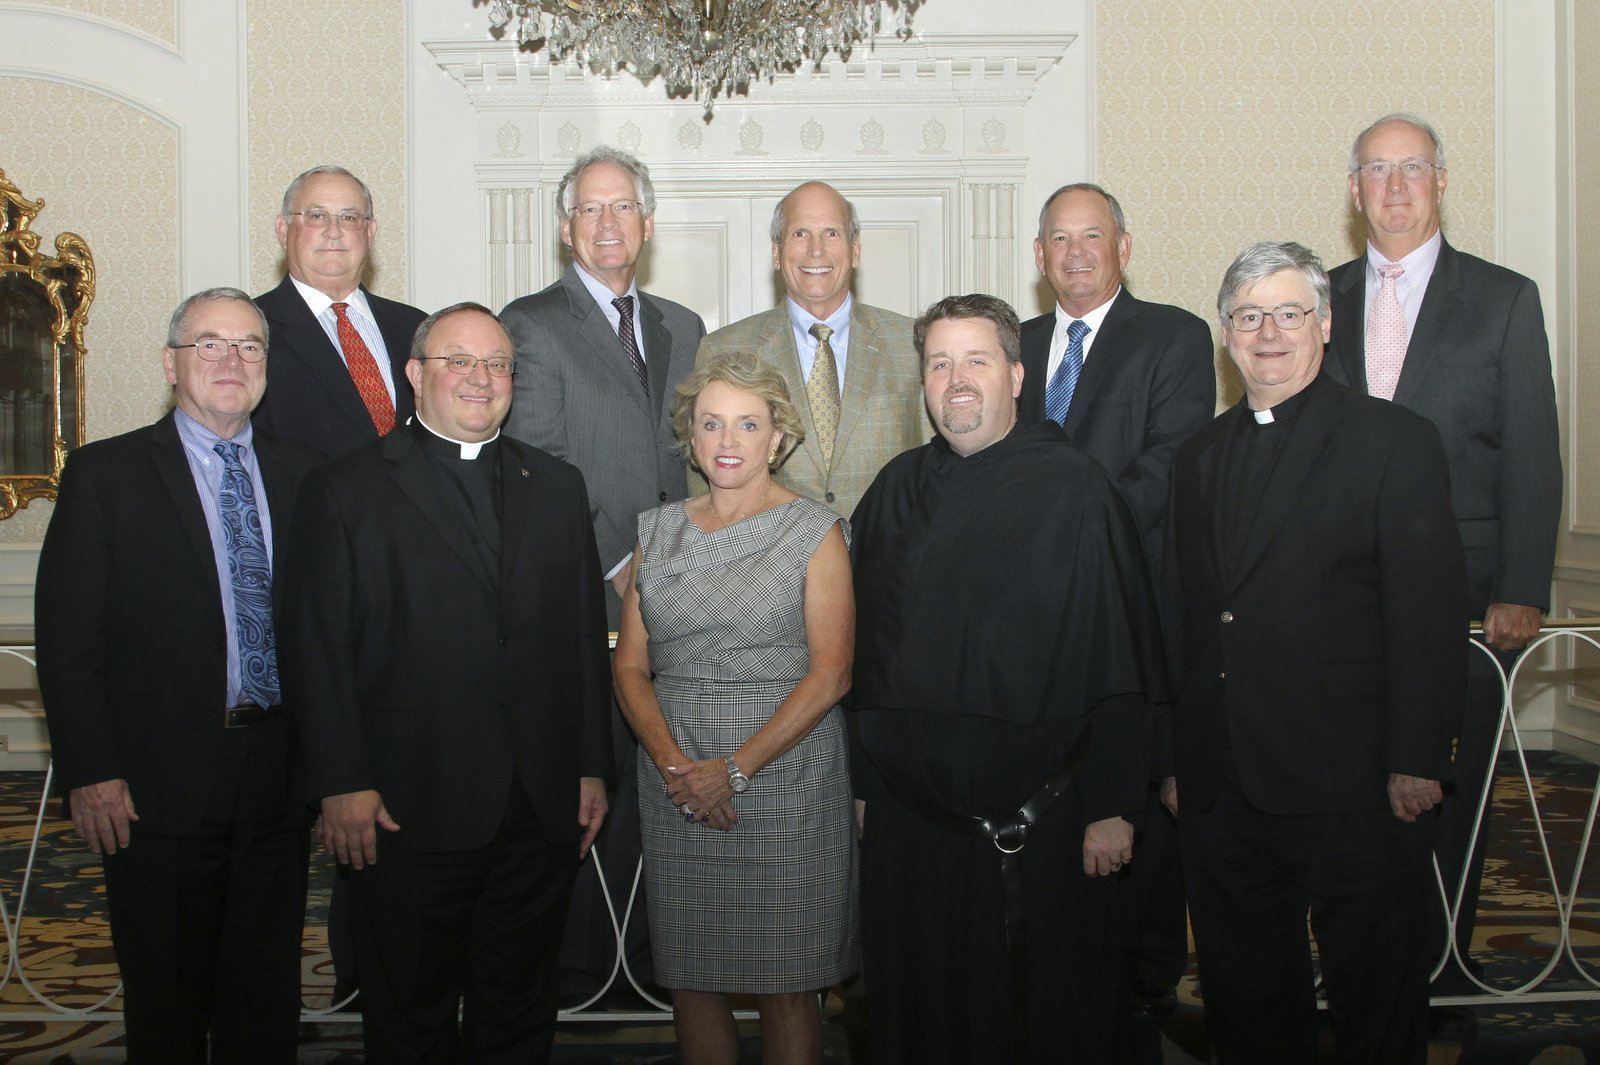 """CHICAGO, IL: Milann leads the Capital Campaign Cabinet for the Augustinians. Top row, from left: Jerry Martin, Patrick O'Connor, Don R. Berschback, Patrick J. Ormsby, Alan B. Ross, Bottom row, from left: Michael Gerrity, Very Rev. Bernard C. Scianna, O.S.A., Ph.D., Milann H. Siegfried, Rev. Thomas McCarthy, O.S.A., and Rev. R. William """"Bill"""" Sullivan, O.S.A."""